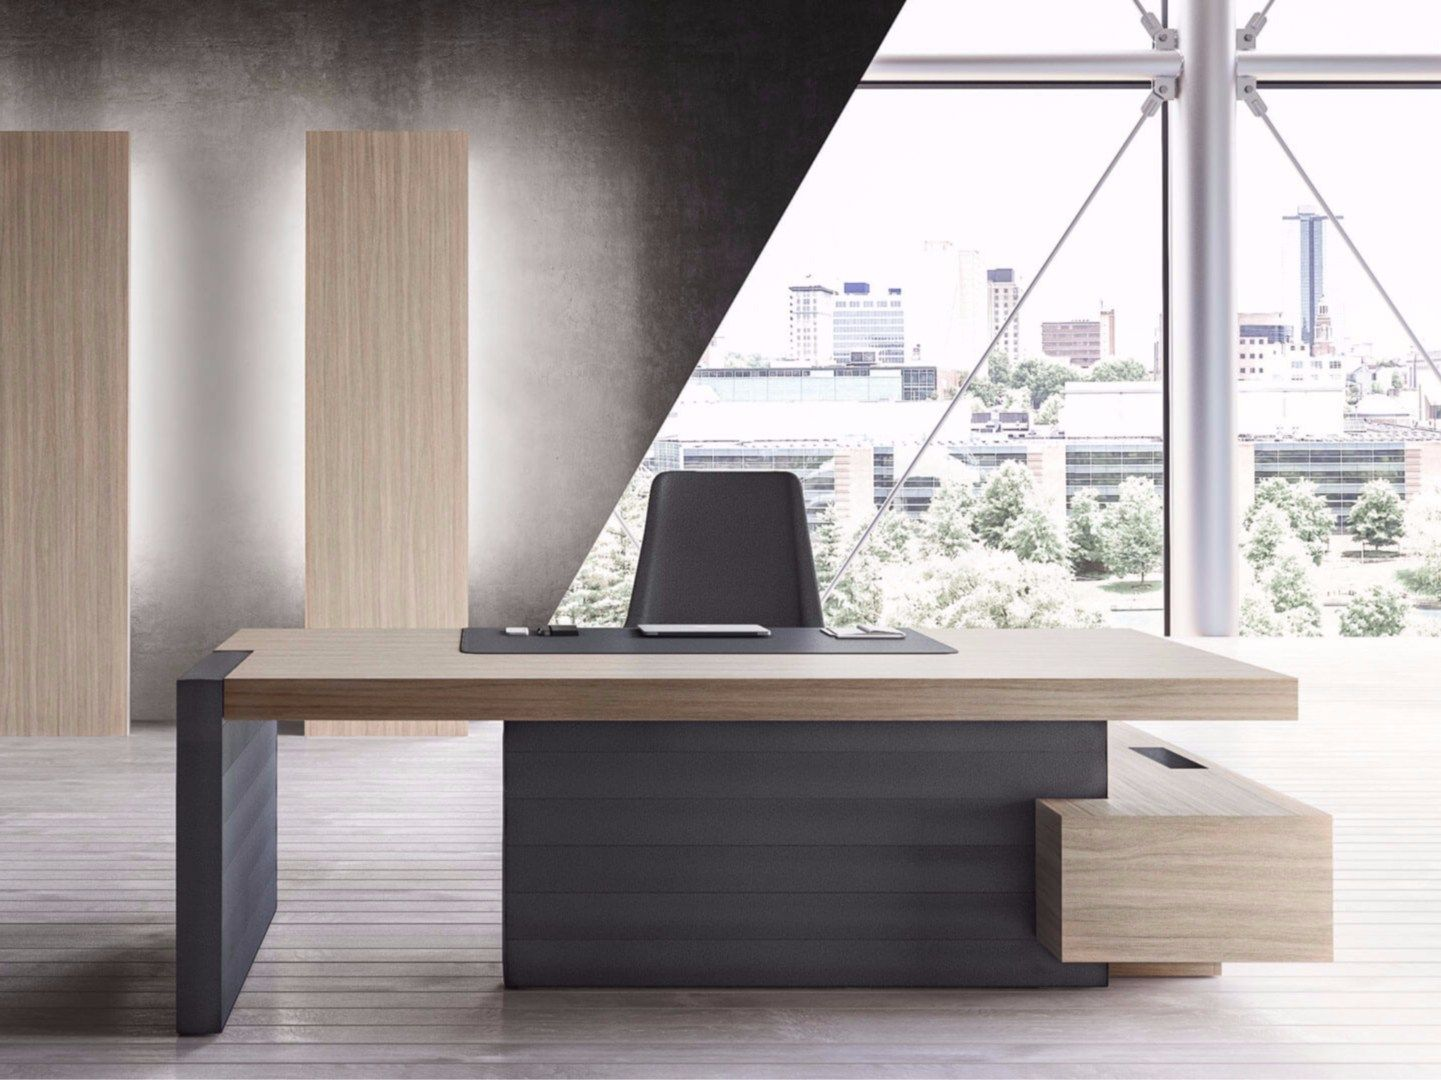 L Shaped Executive Desk With Shelves Jera Office Desk With Shelves Las Mobili Escritorio De Oficina Ejecutiva Oficina Ejecutiva Escritorio Oficina